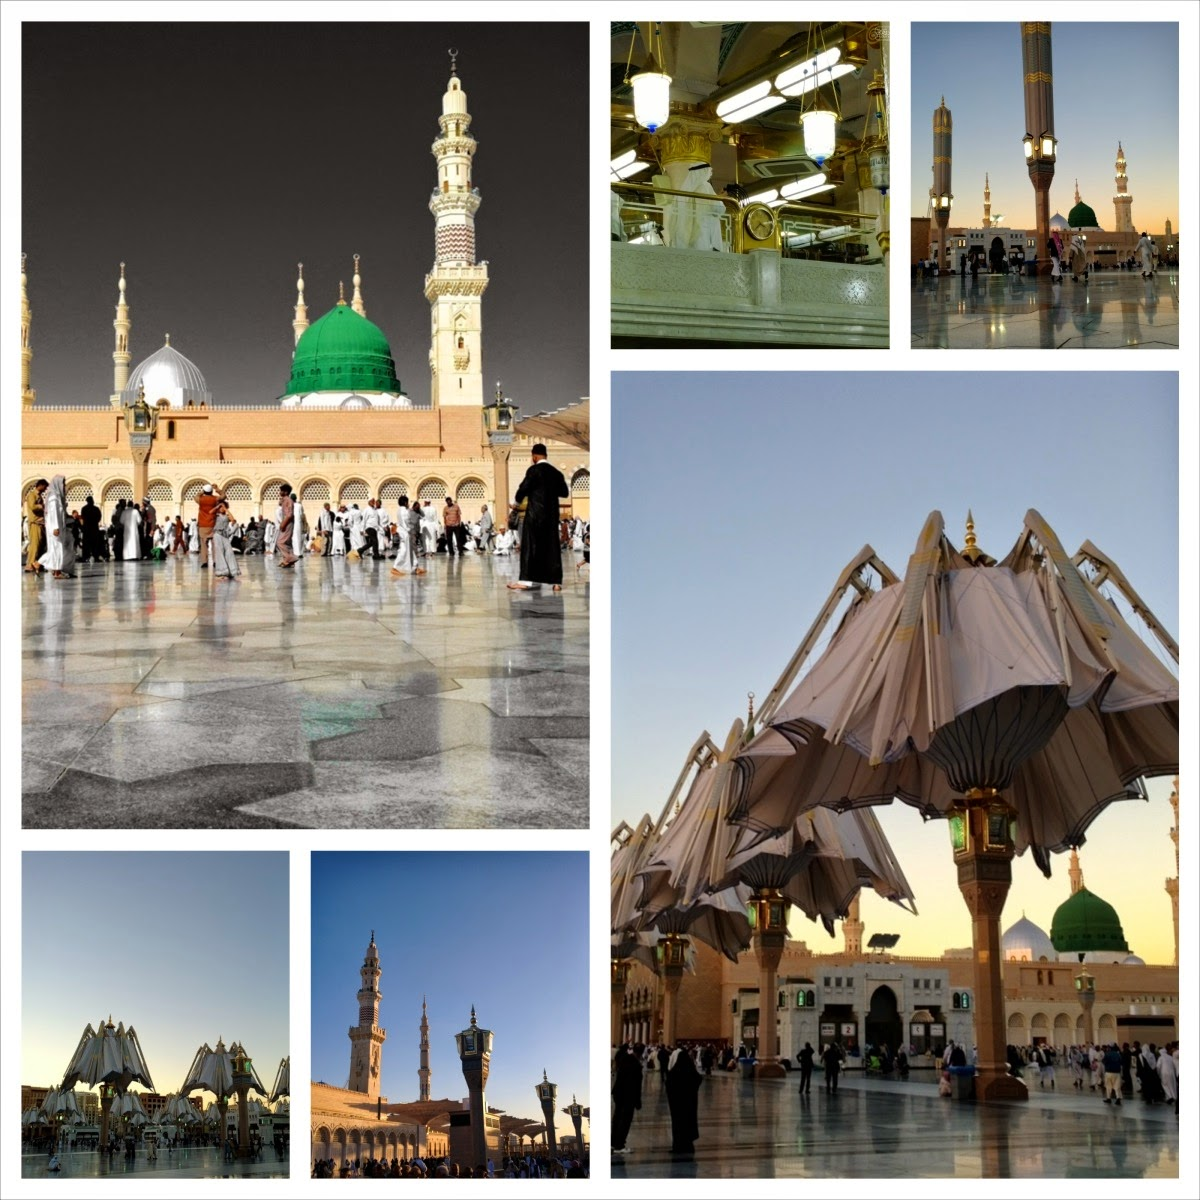 30 places to visit in Madinah - Travel for Umrah